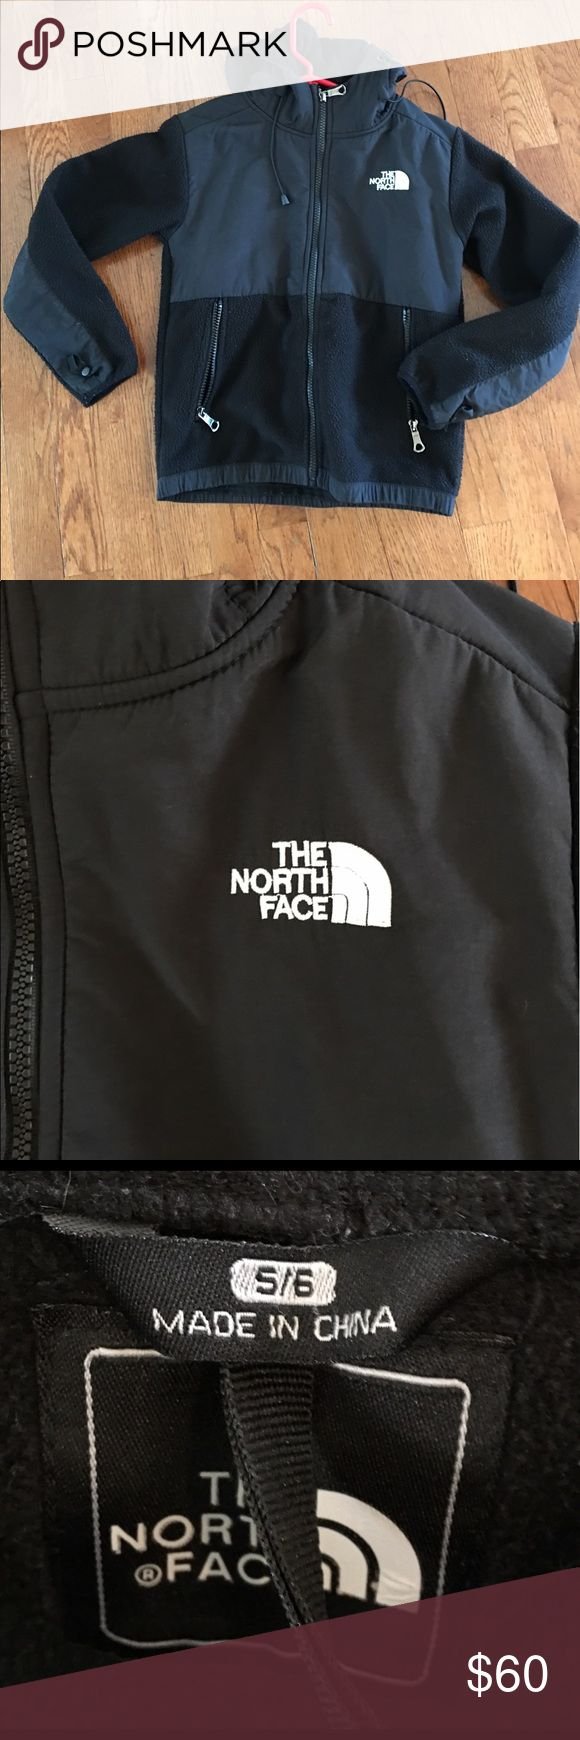 North Face Kids Jacket. North Face kids Jacket , very good condition .Winter CLEARANCE, final price. The North Face Jackets & Coats